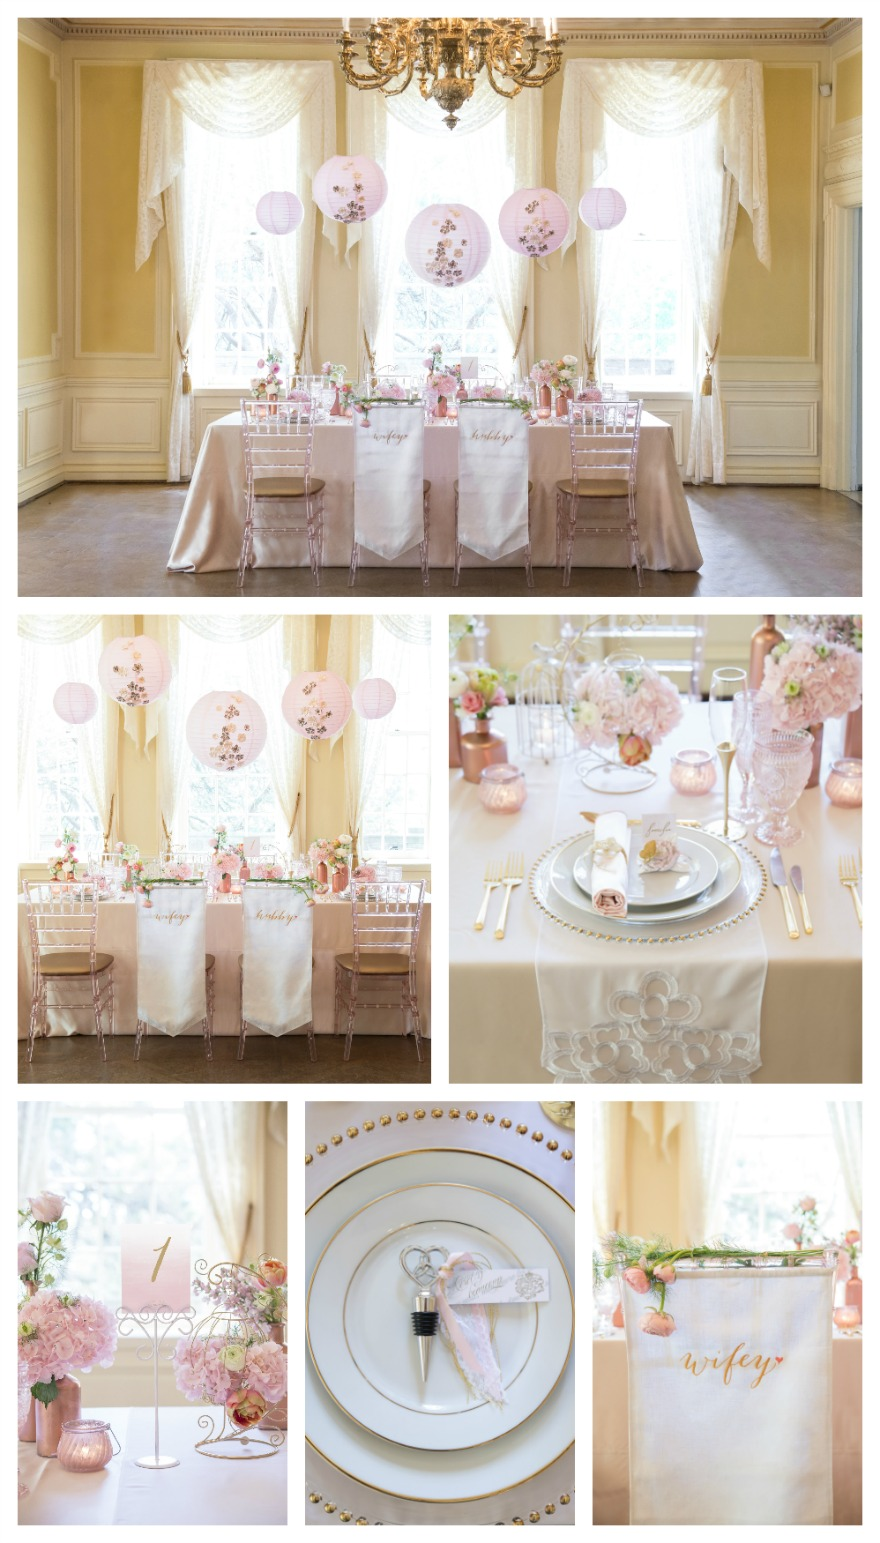 Classic wedding table decorations and chair decor   Confetti.co.uk